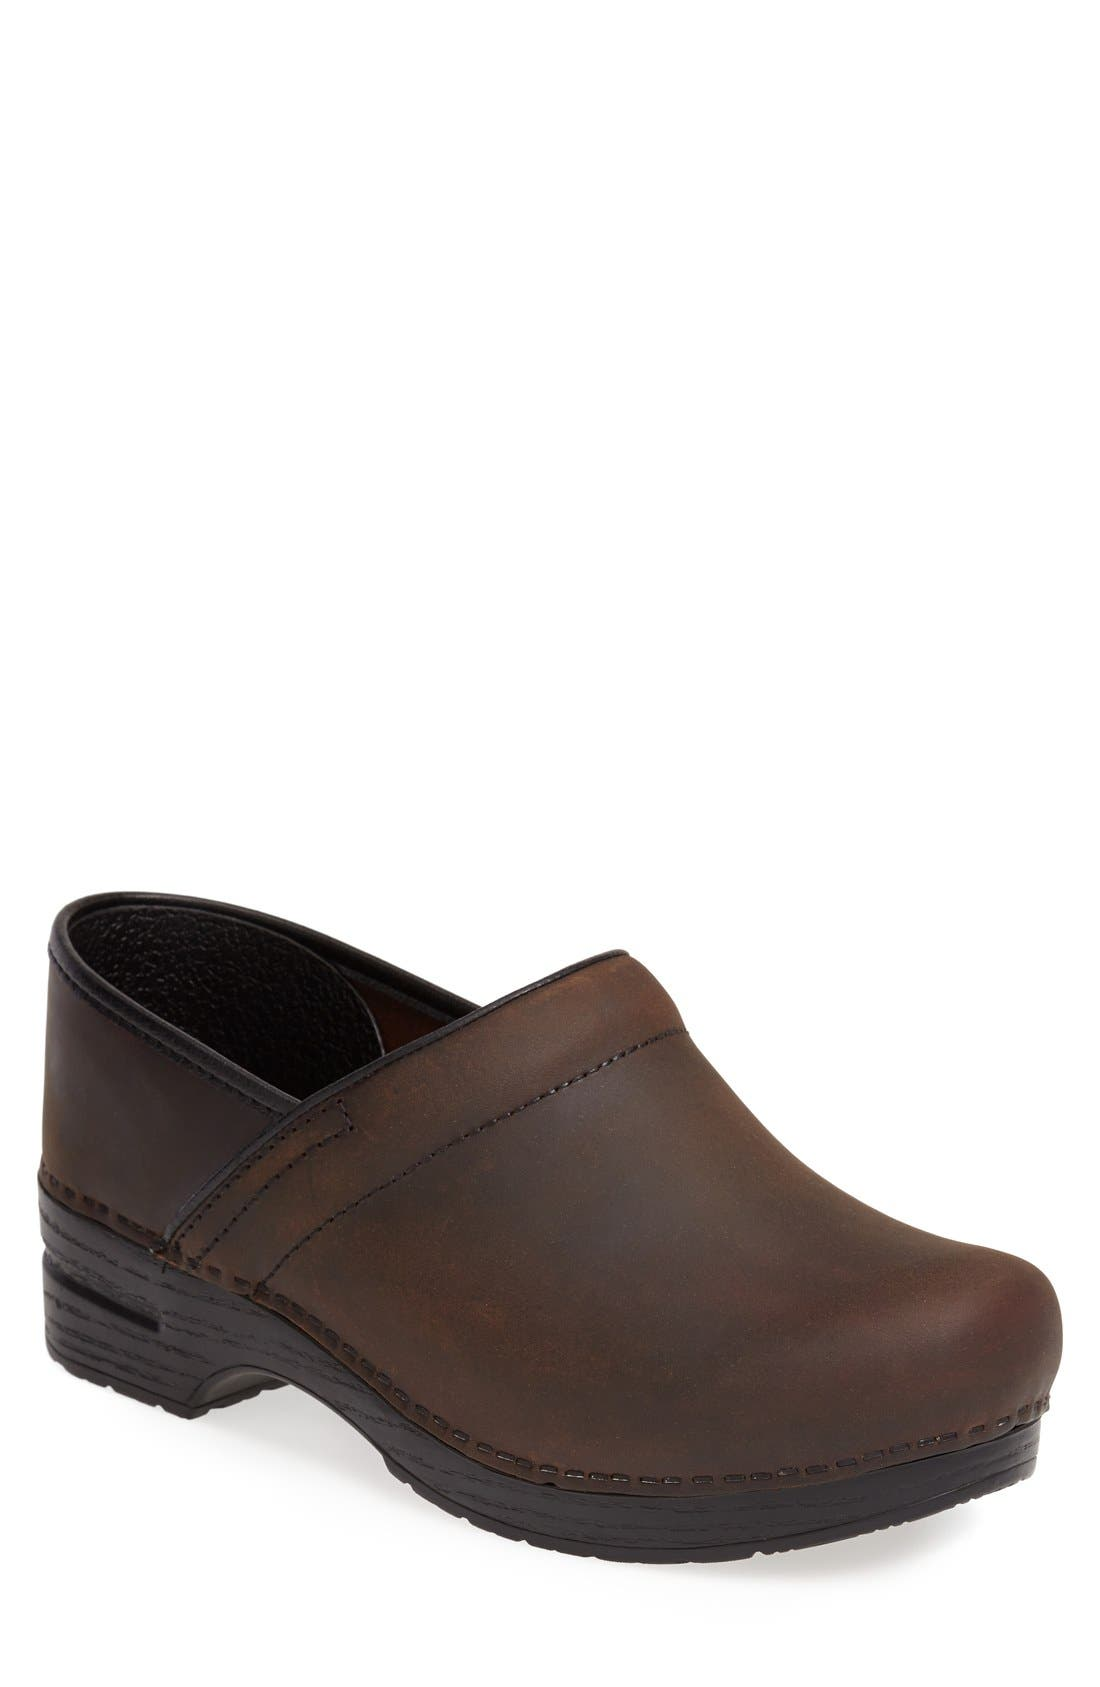 'Pro' Clog,                         Main,                         color, Antique Brown Oiled